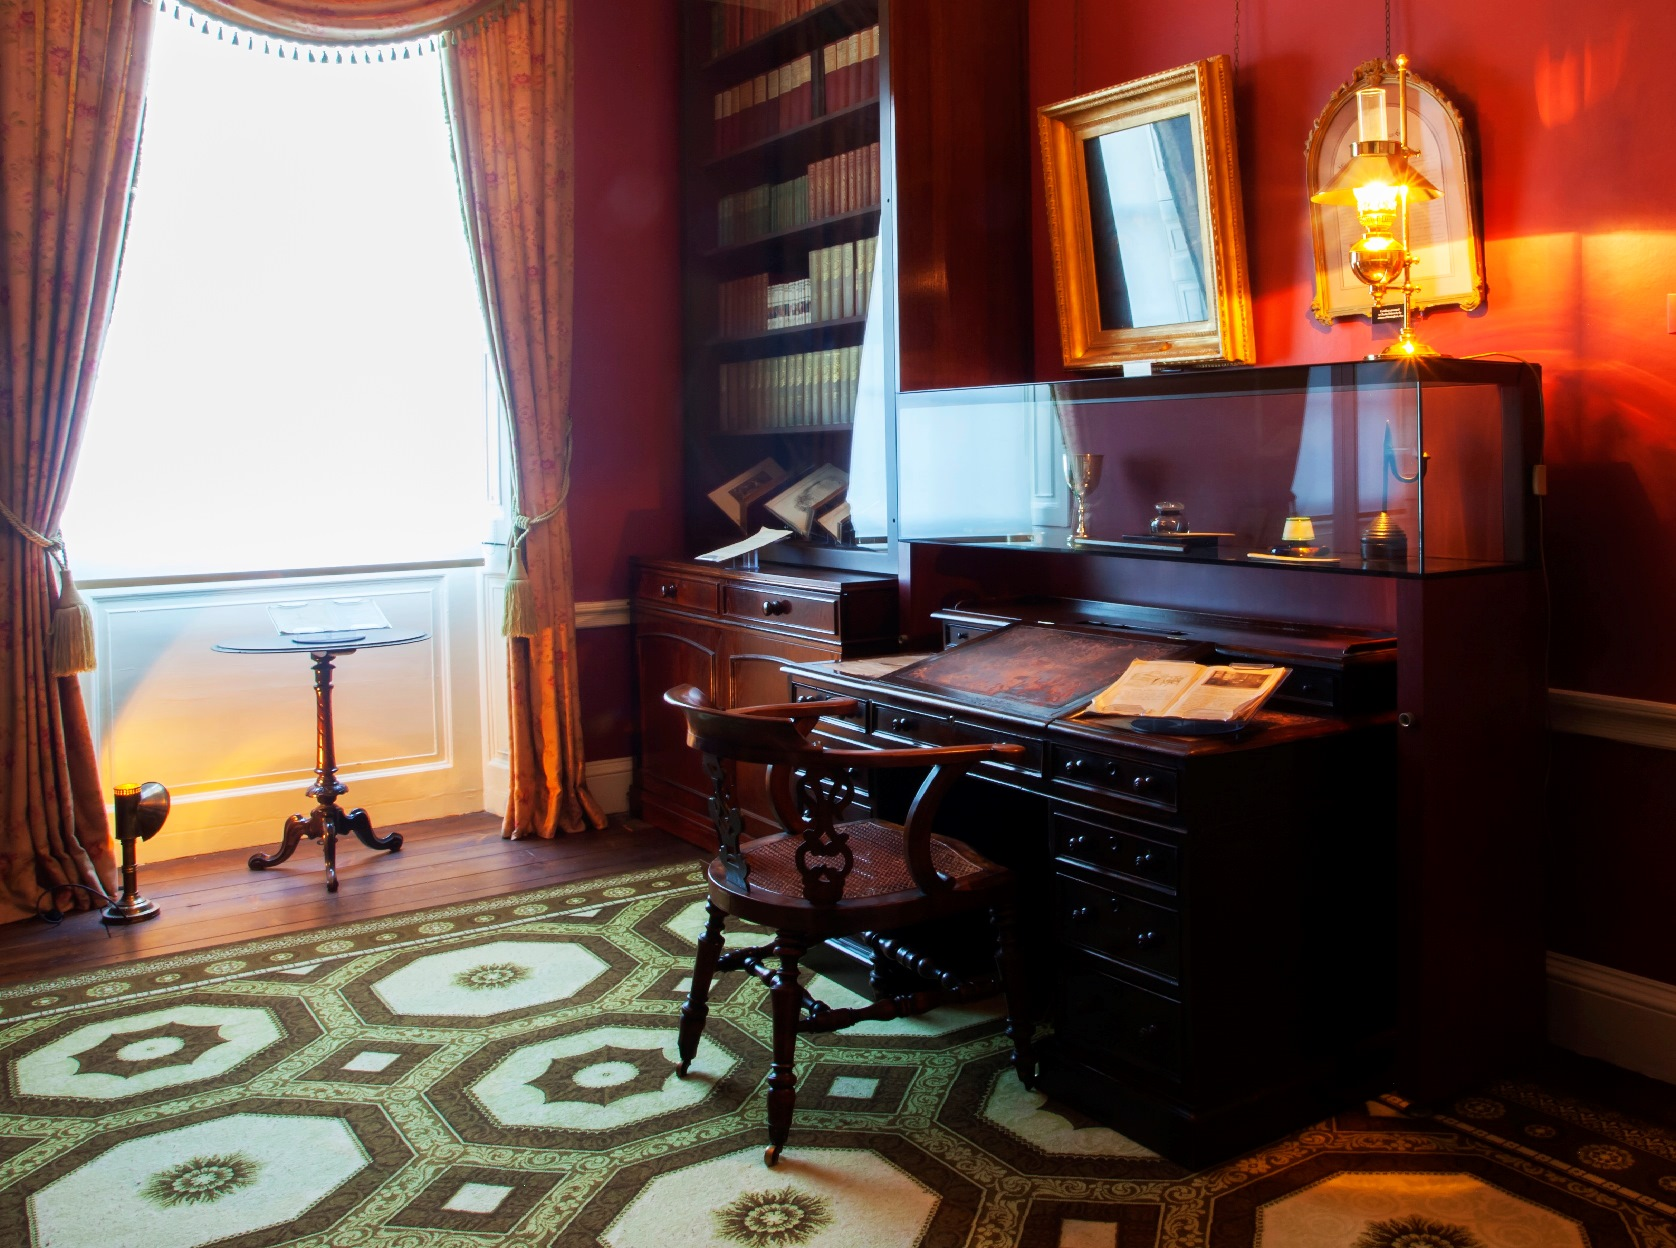 Dickens's desk and chair